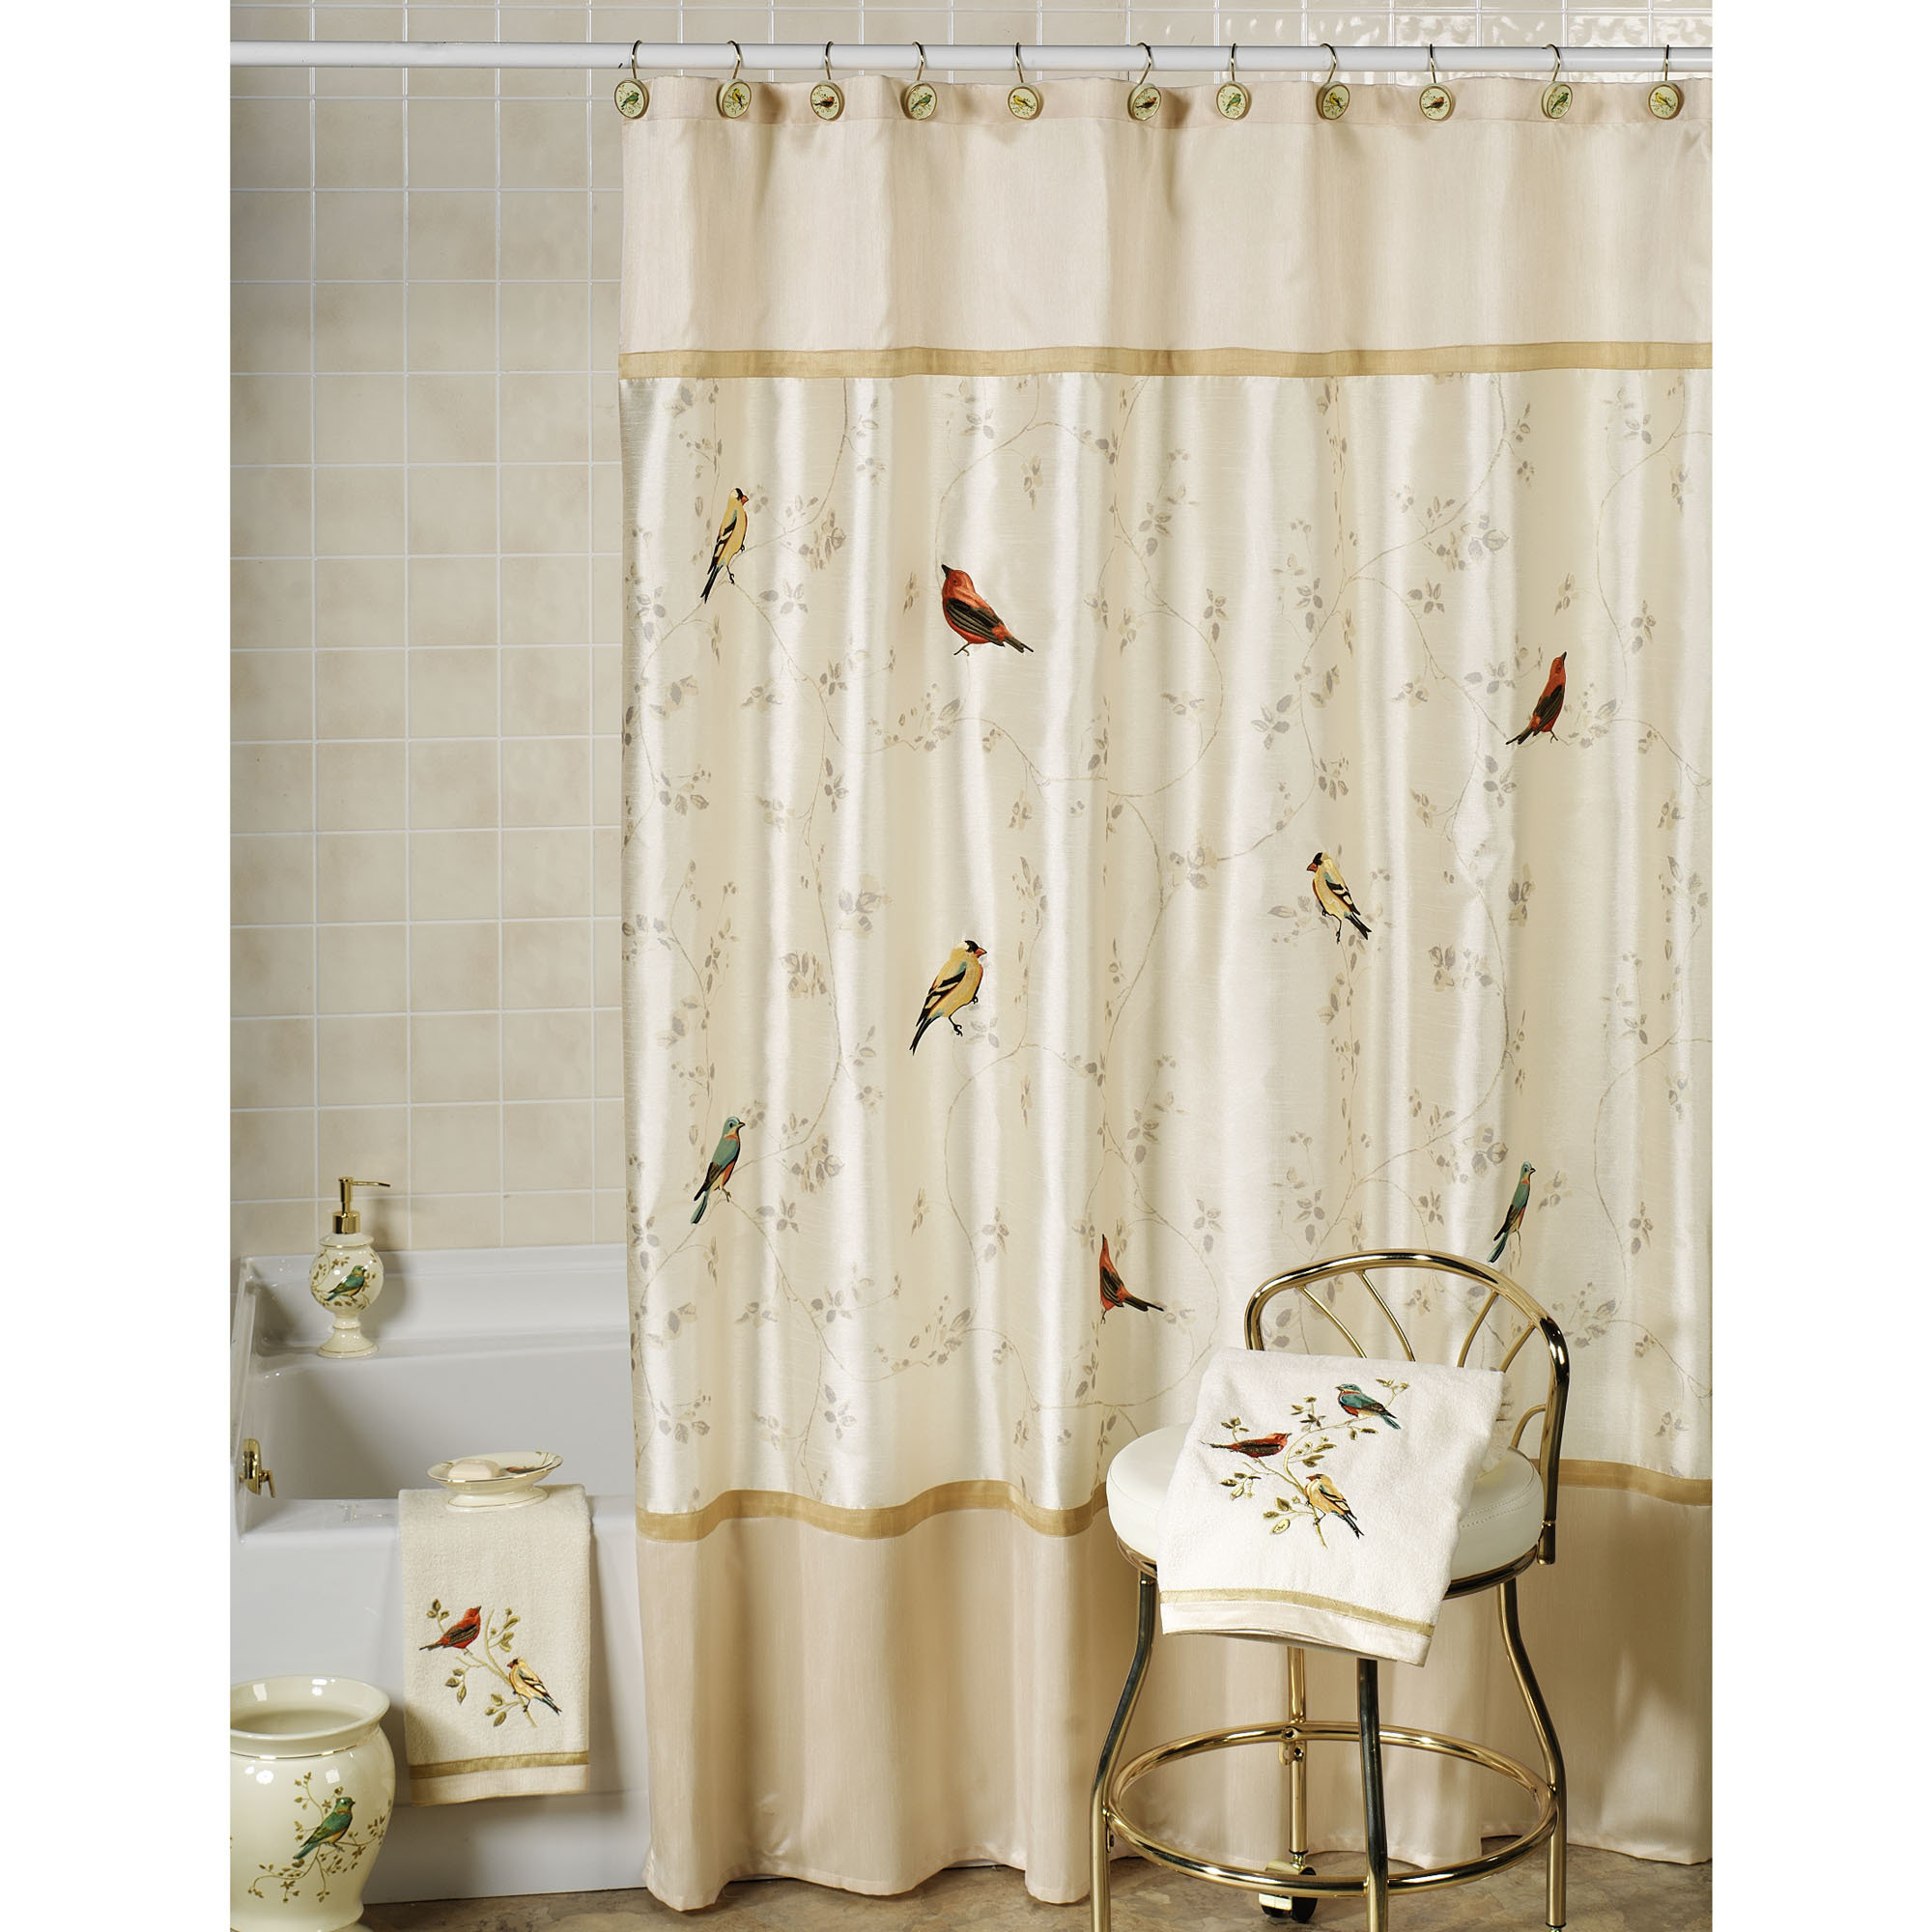 with extra elements curtains give piecing into of a solid trim pin sheer the feel patterned your and room can bring pattern color